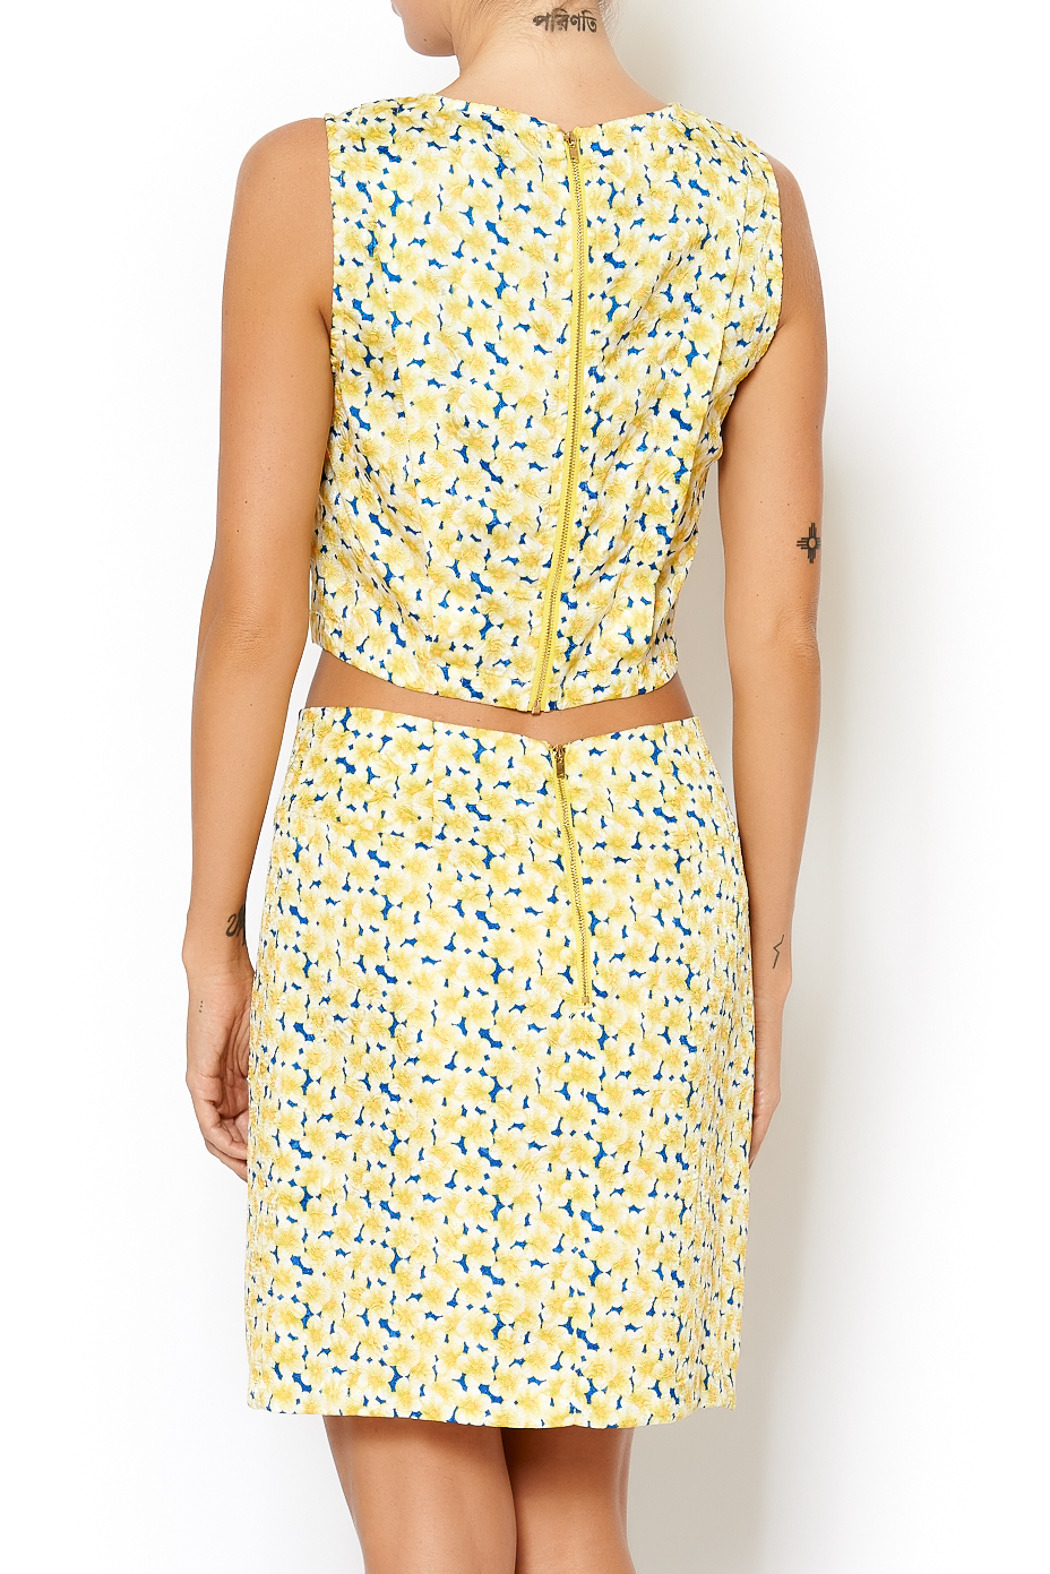 I. Madeline Yellow Daisy Crop Top - Front Full Image